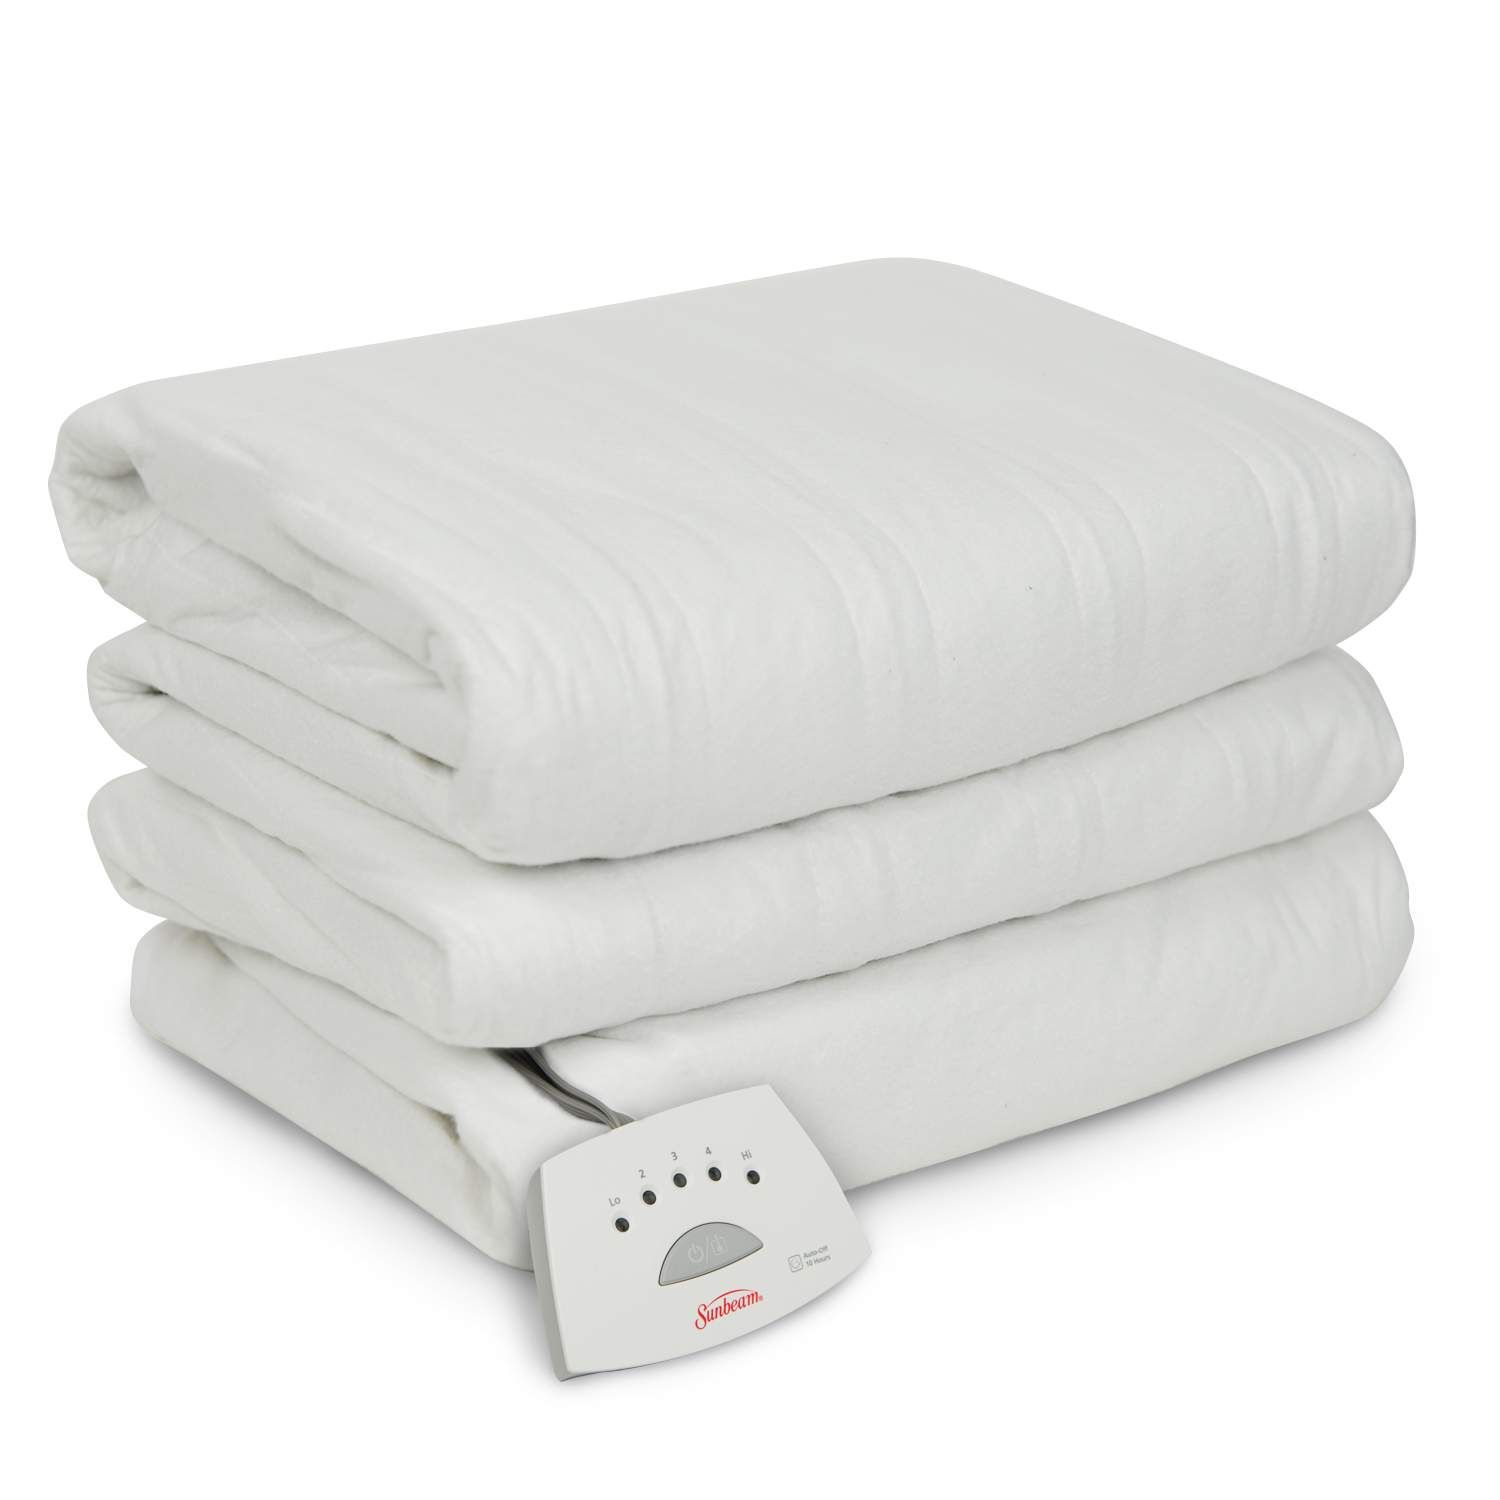 Deals On Twitter Heated Mattress Pad Mattress Pad Queen Mattress Pad